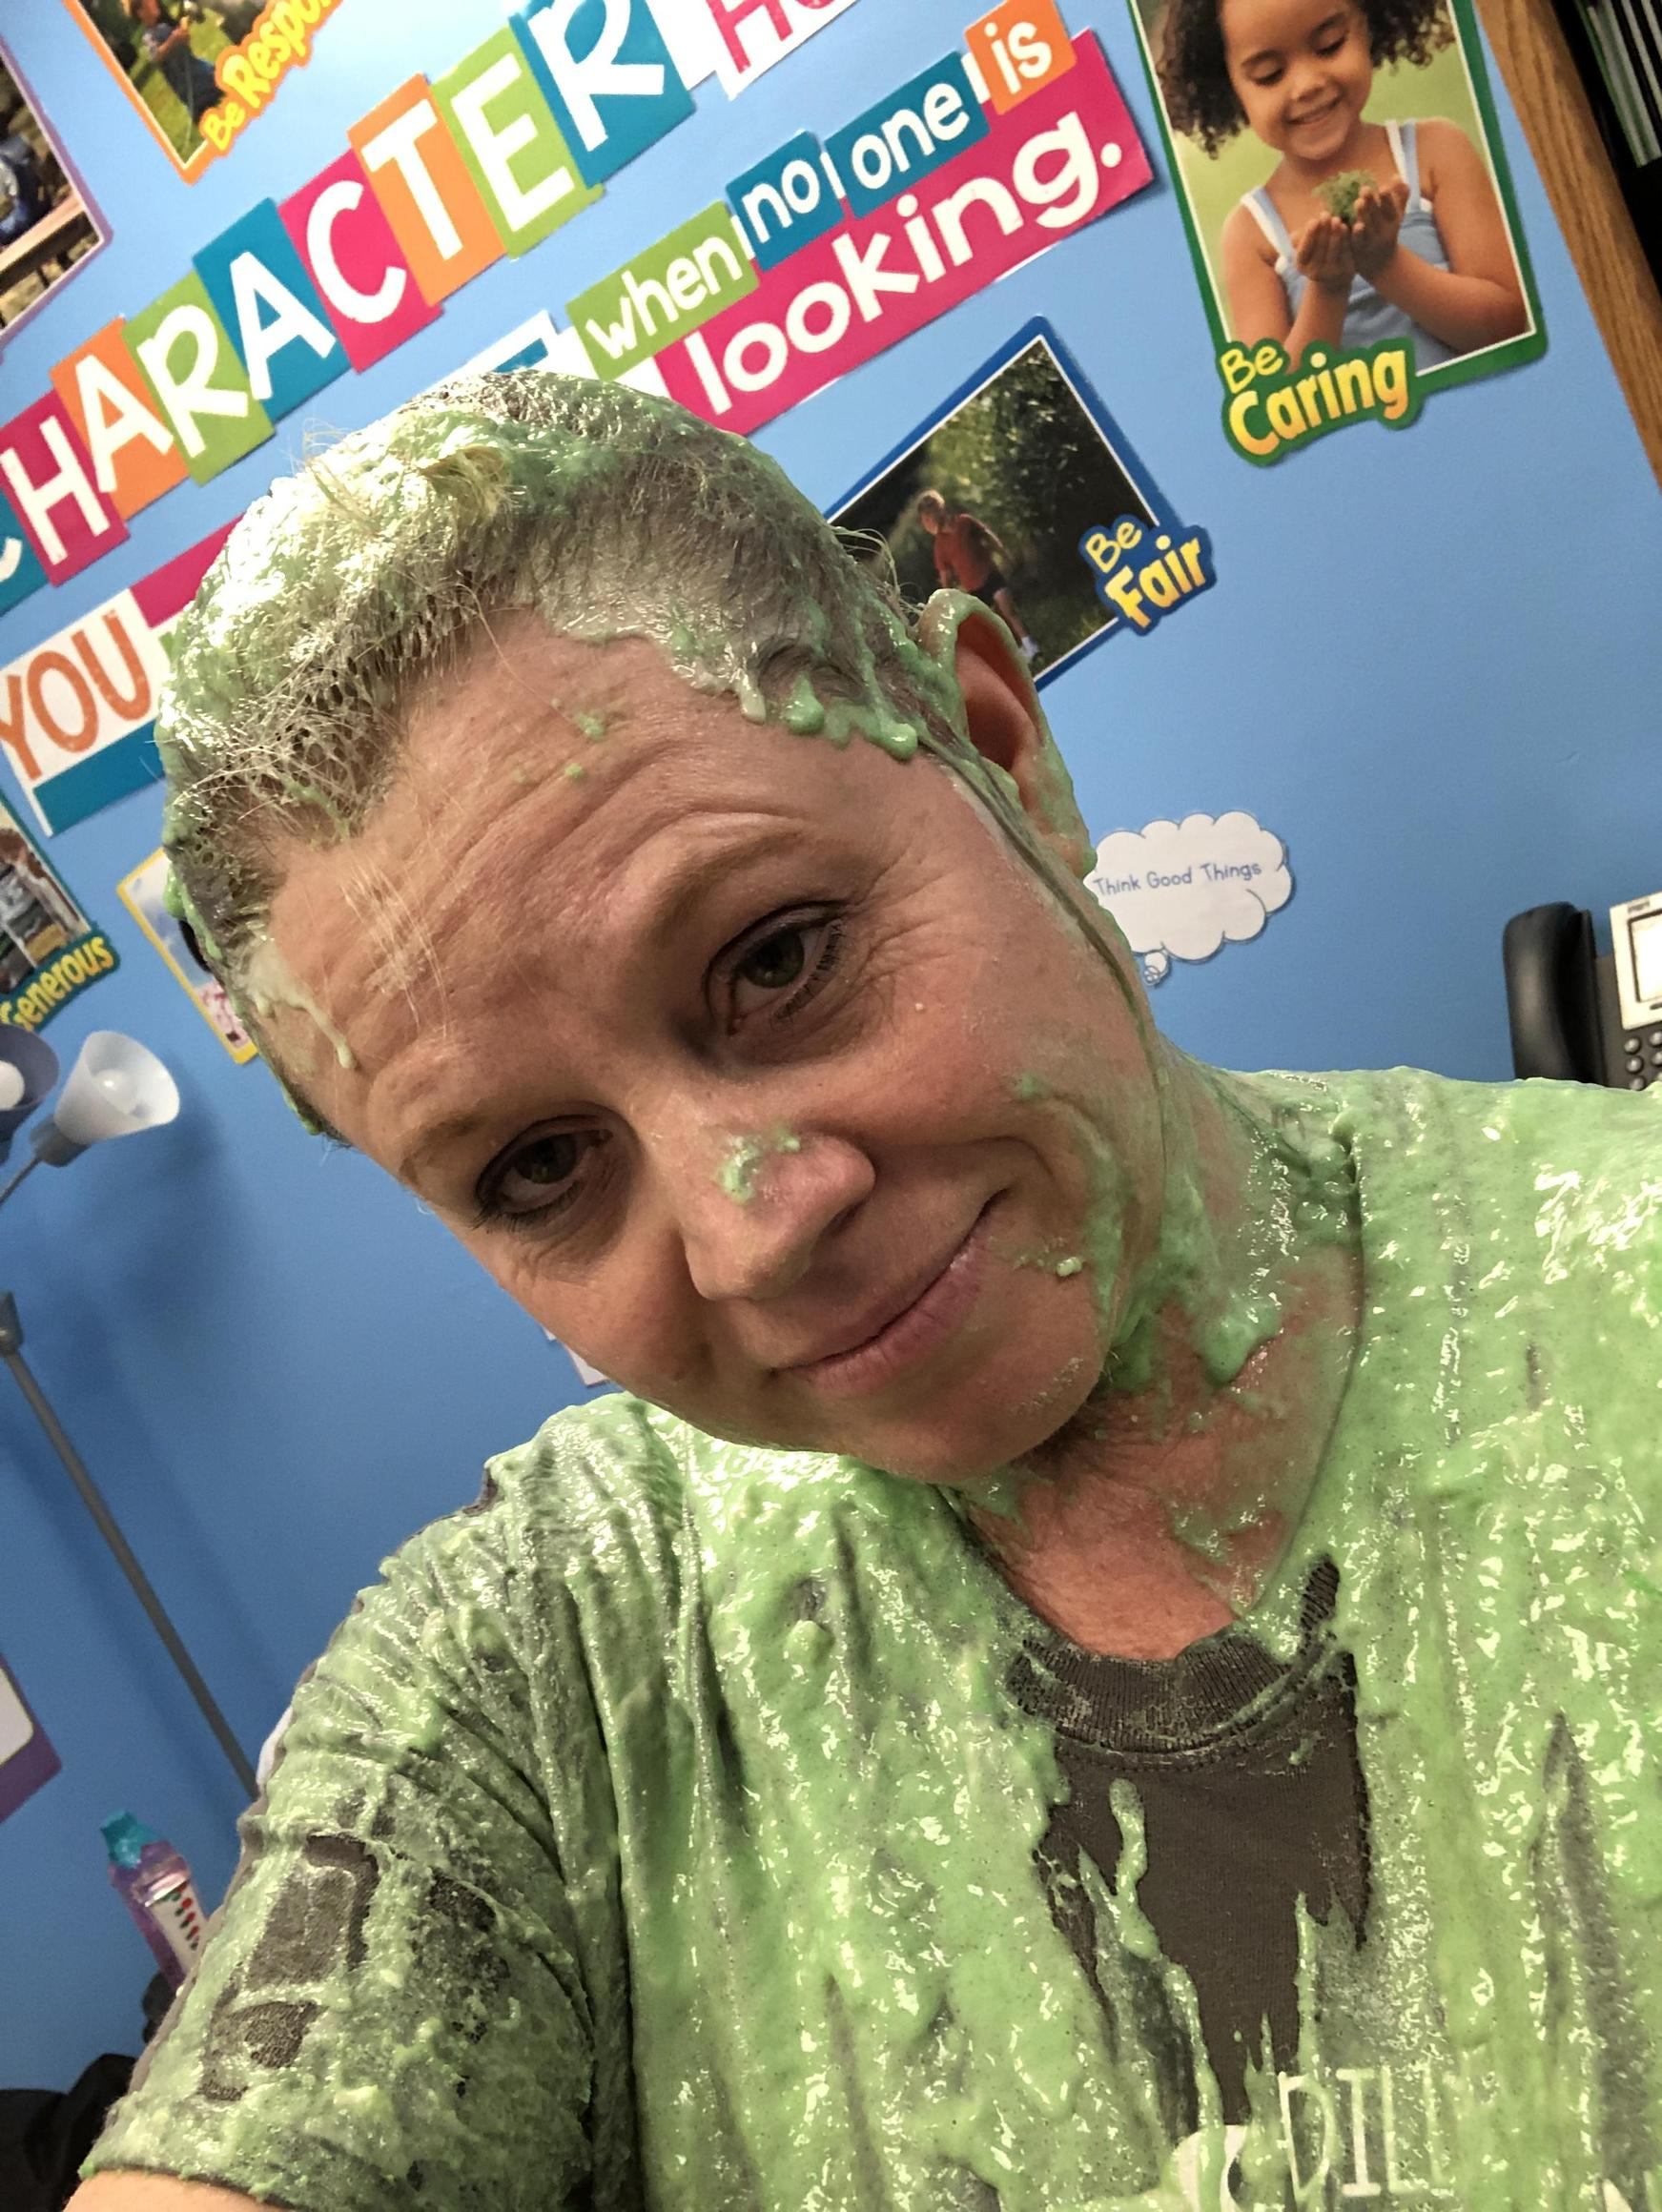 A picture of me after I agreed to be slimed if our students beat an amount raised for a fundraiser.